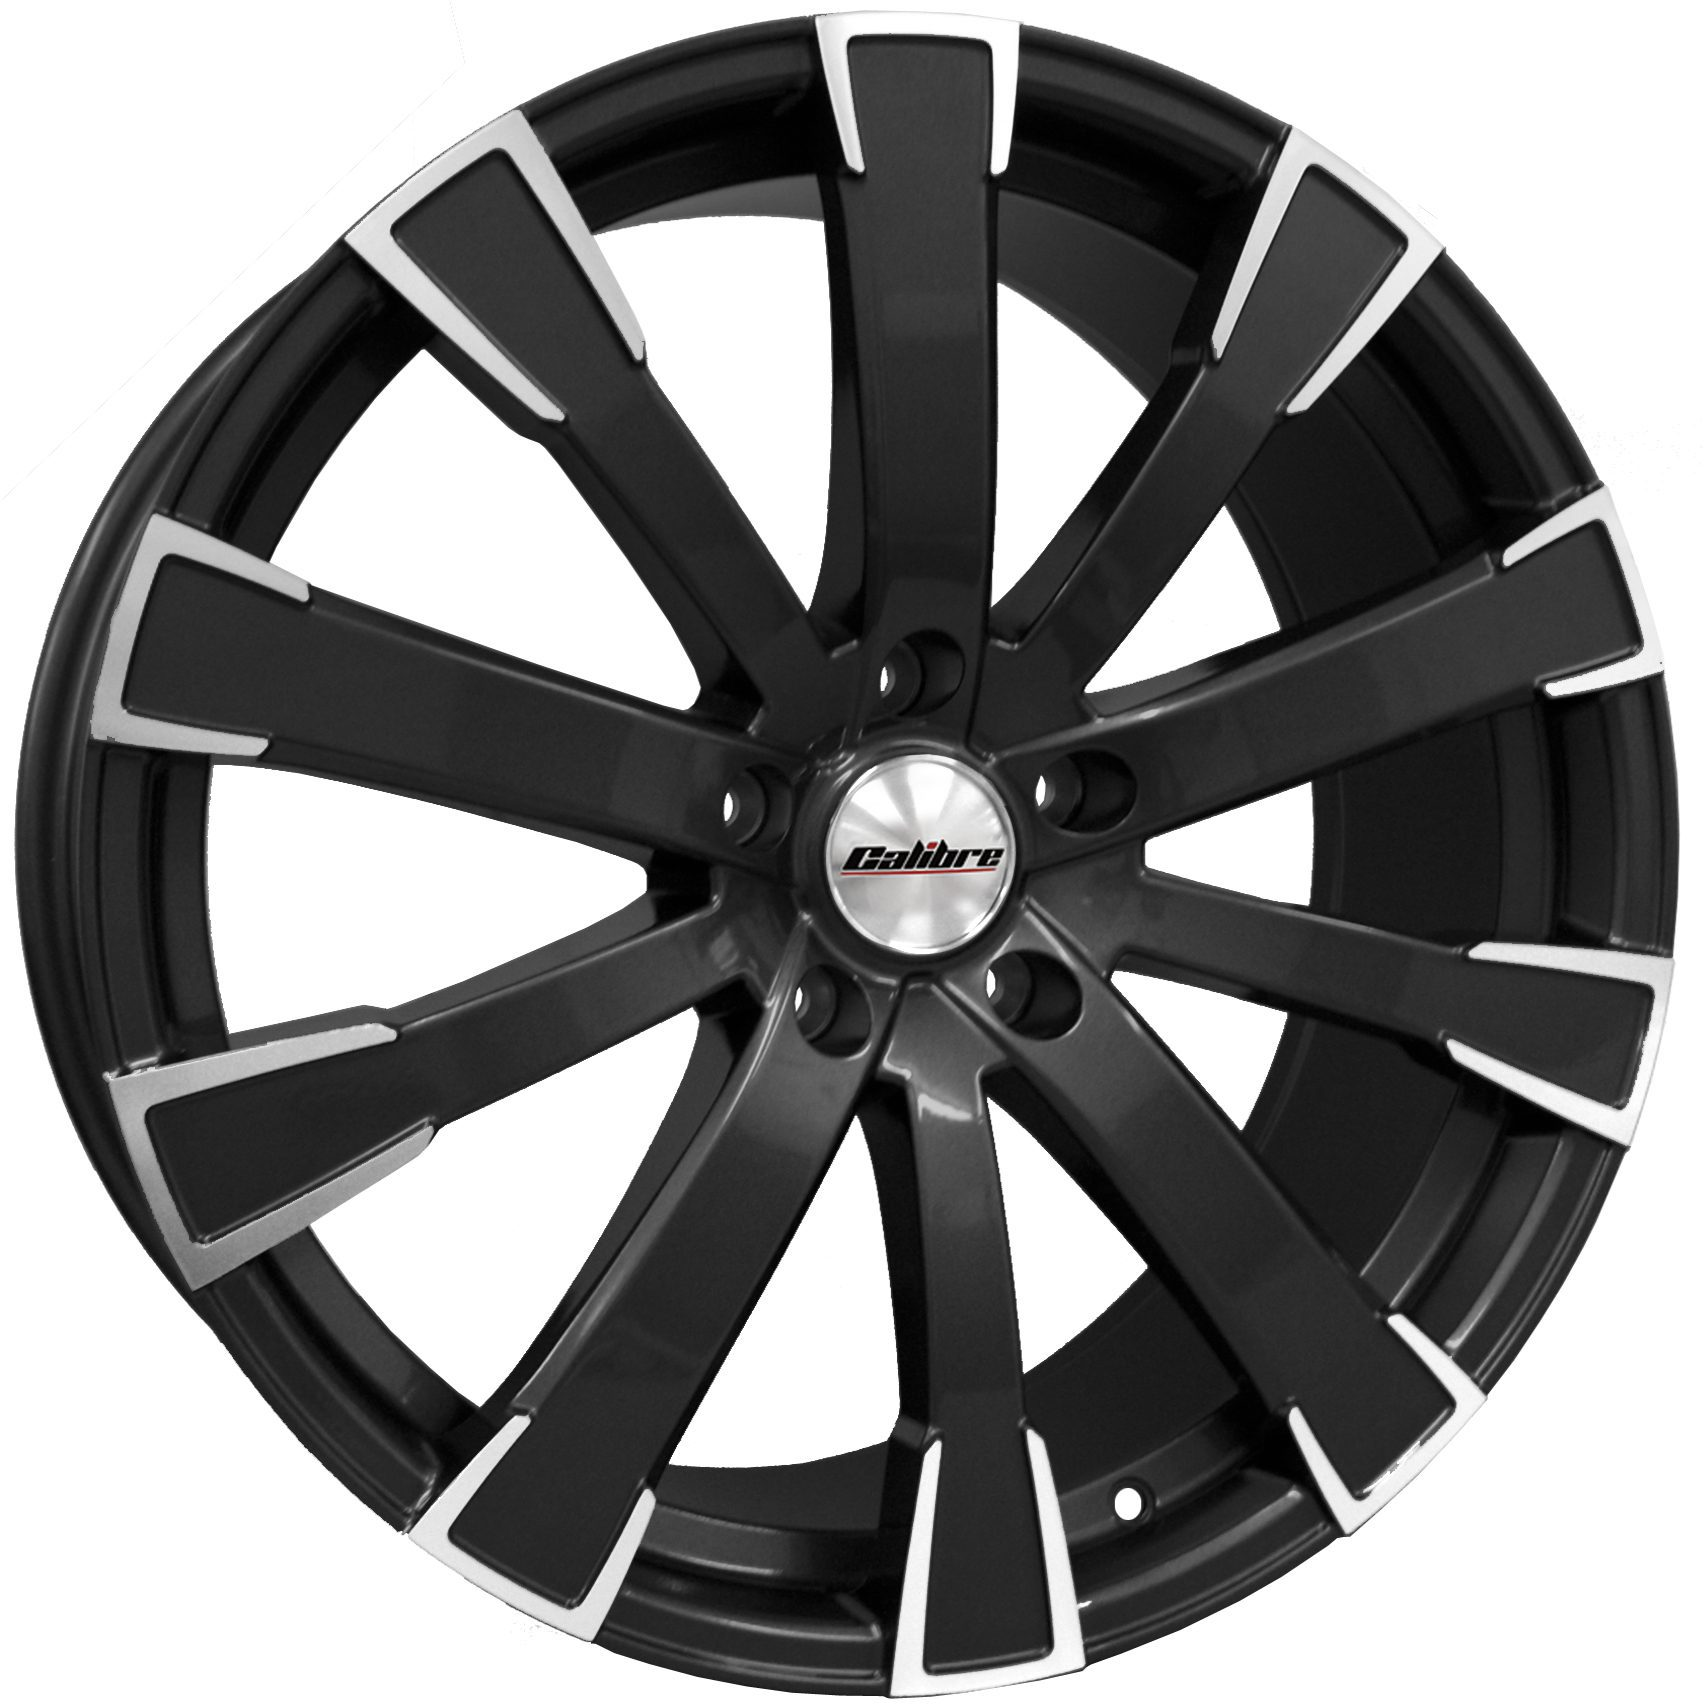 "Wheel Calibre Manhattan 8.5x20"" Black Polished Face 5x120 ET45"